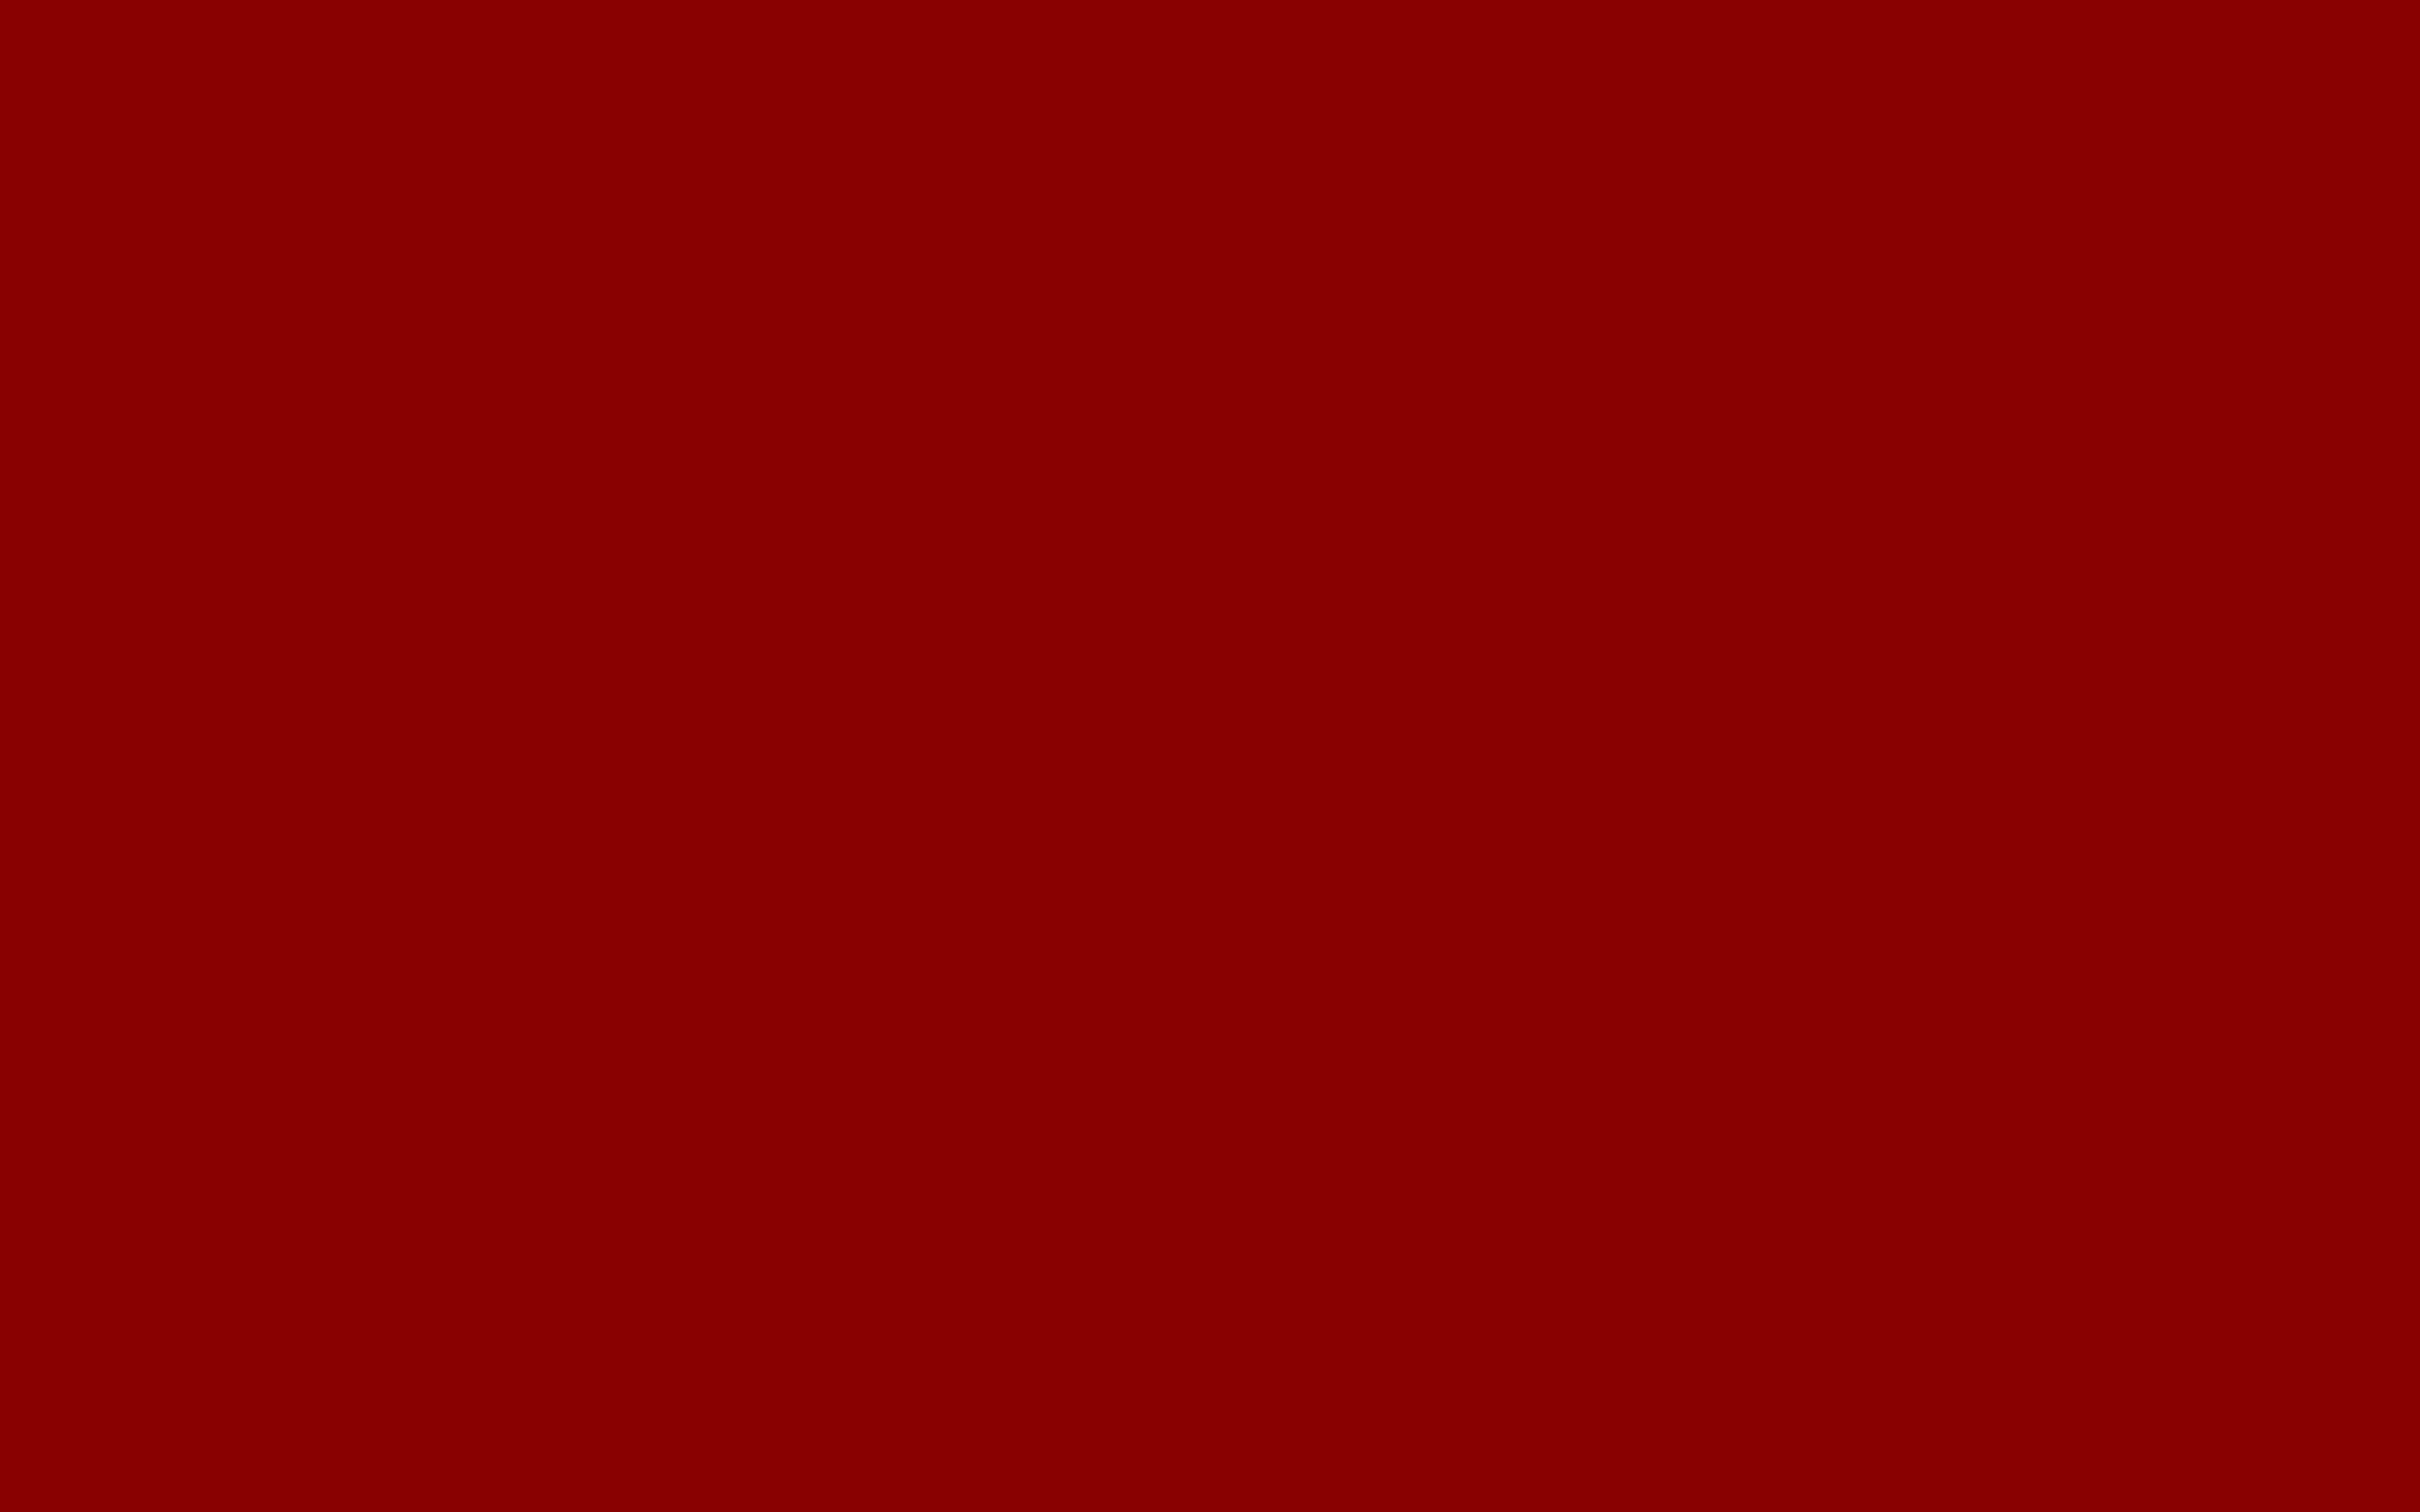 2880x1800 Dark Red Solid Color Background Human Design Red 2880x1800